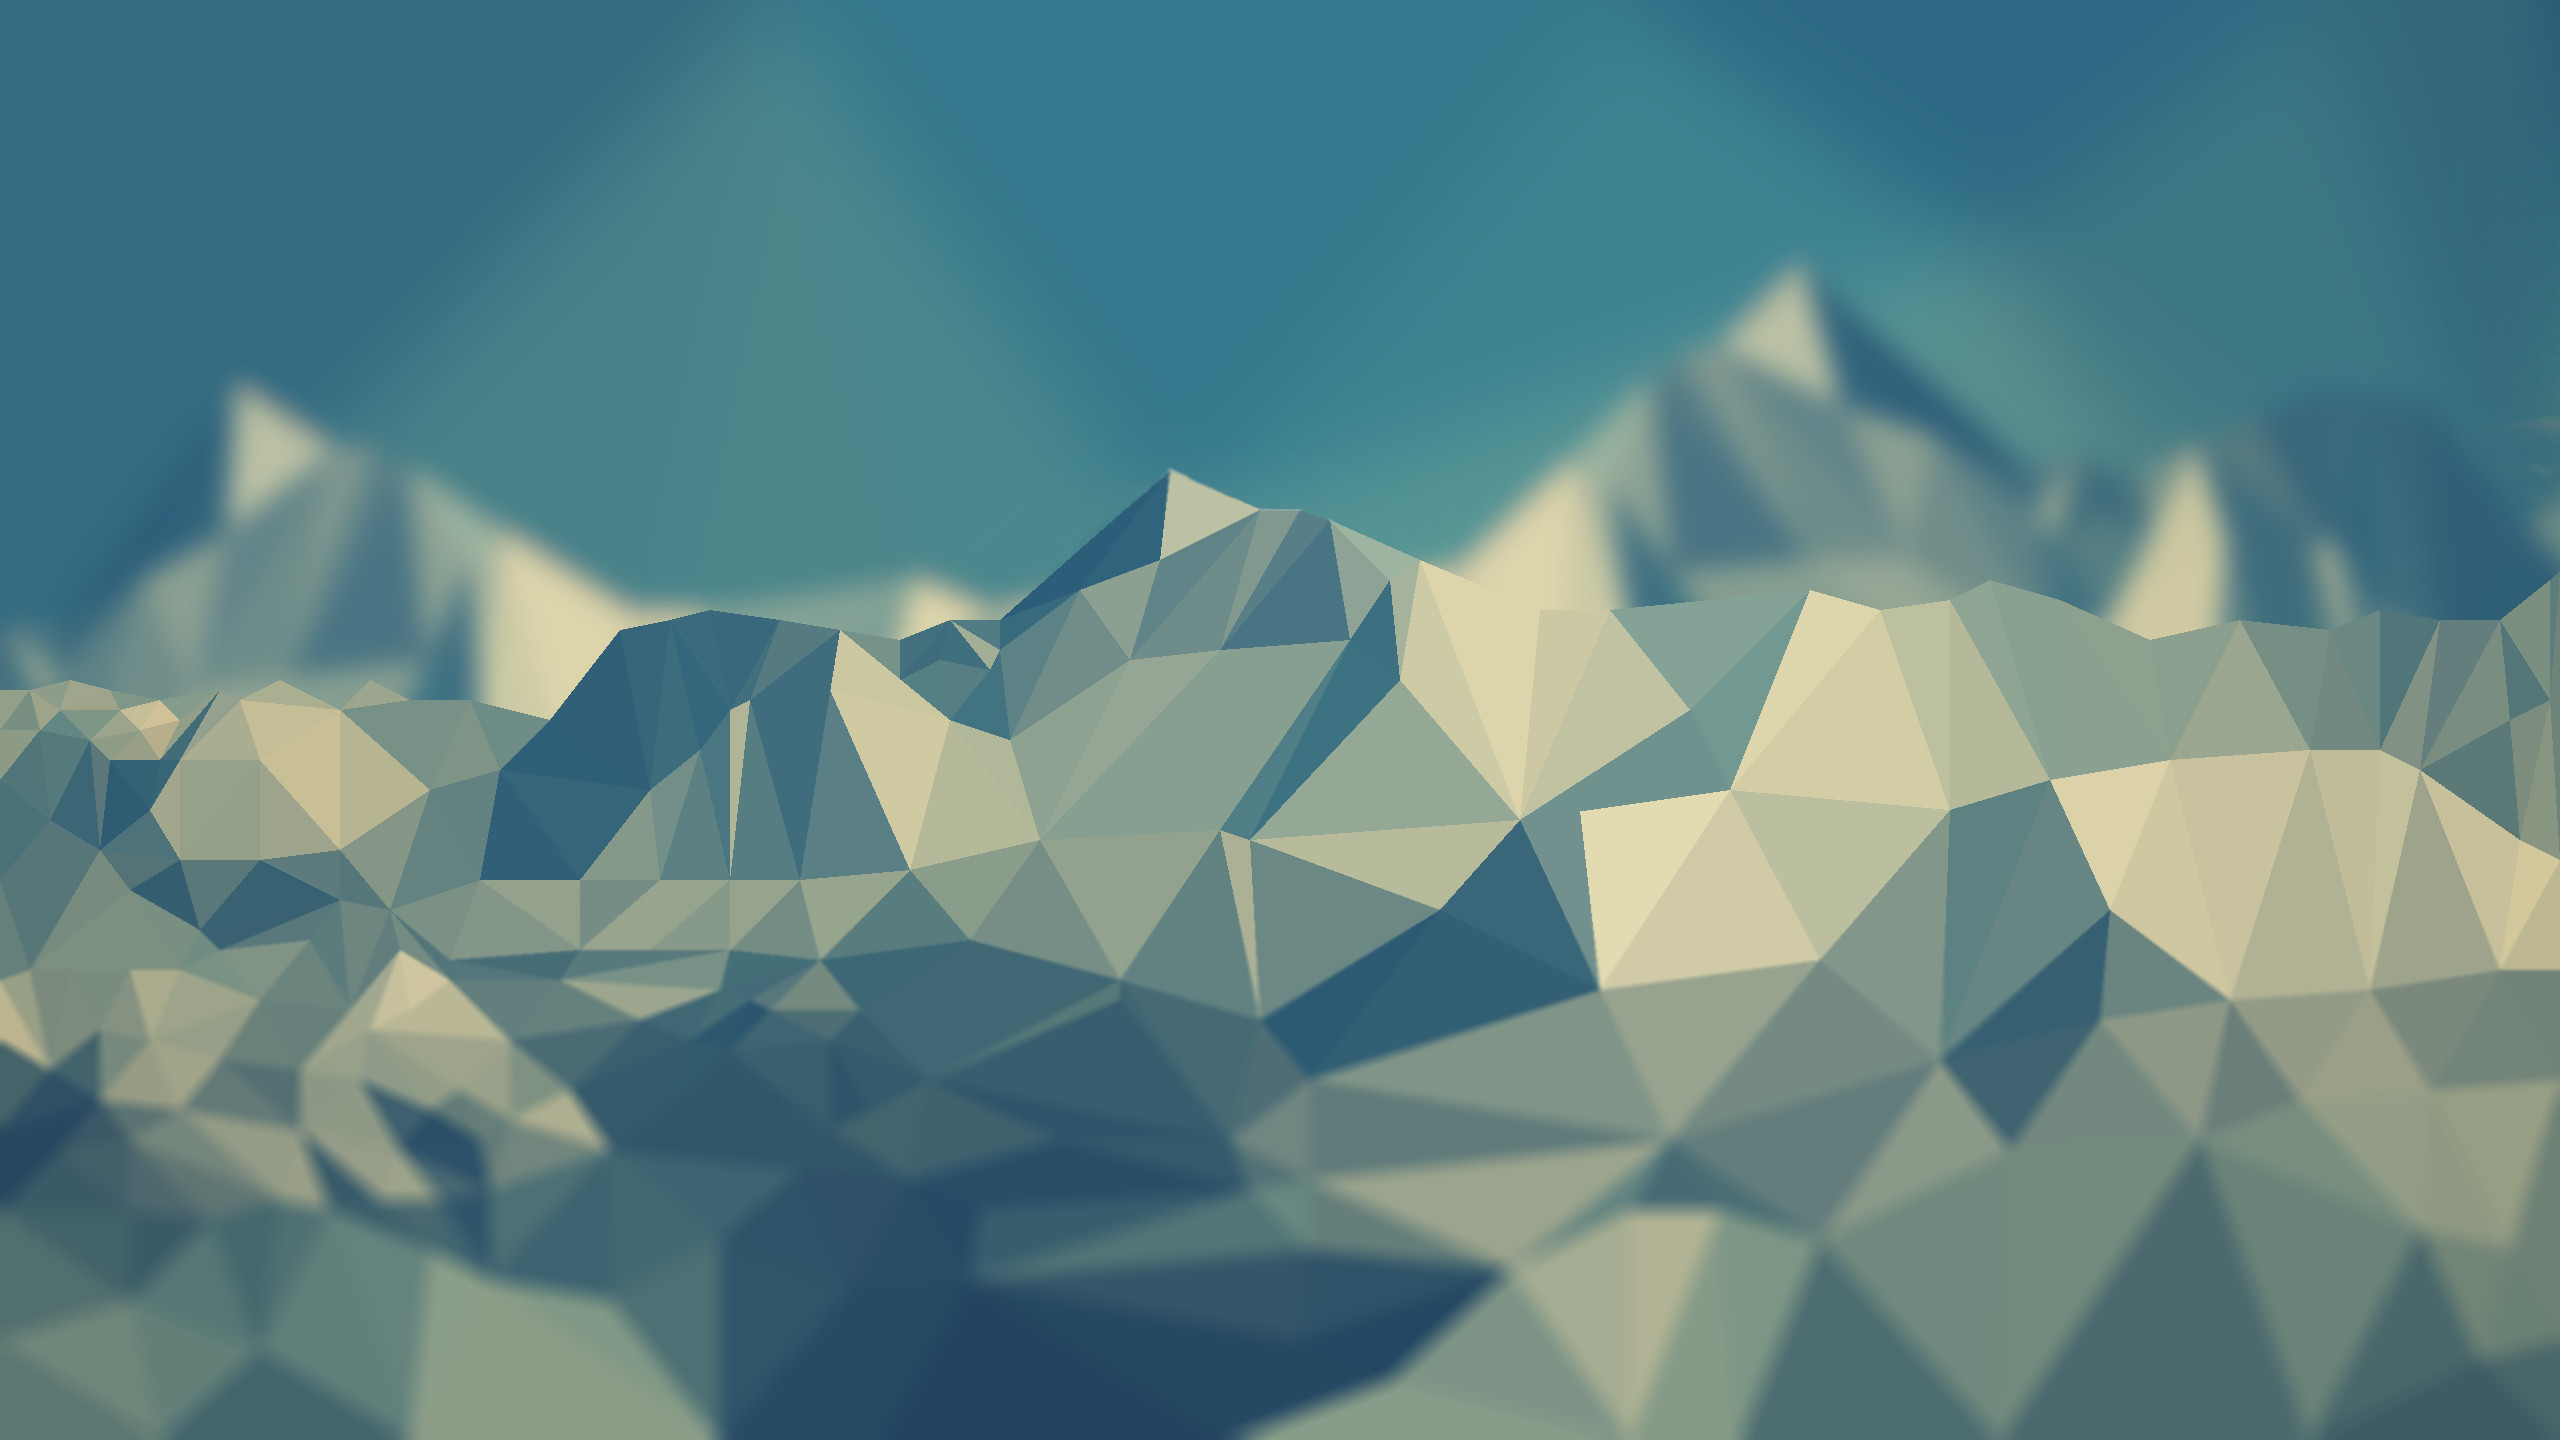 Res: 2560x1440, My favorite low poly wallpaper ...